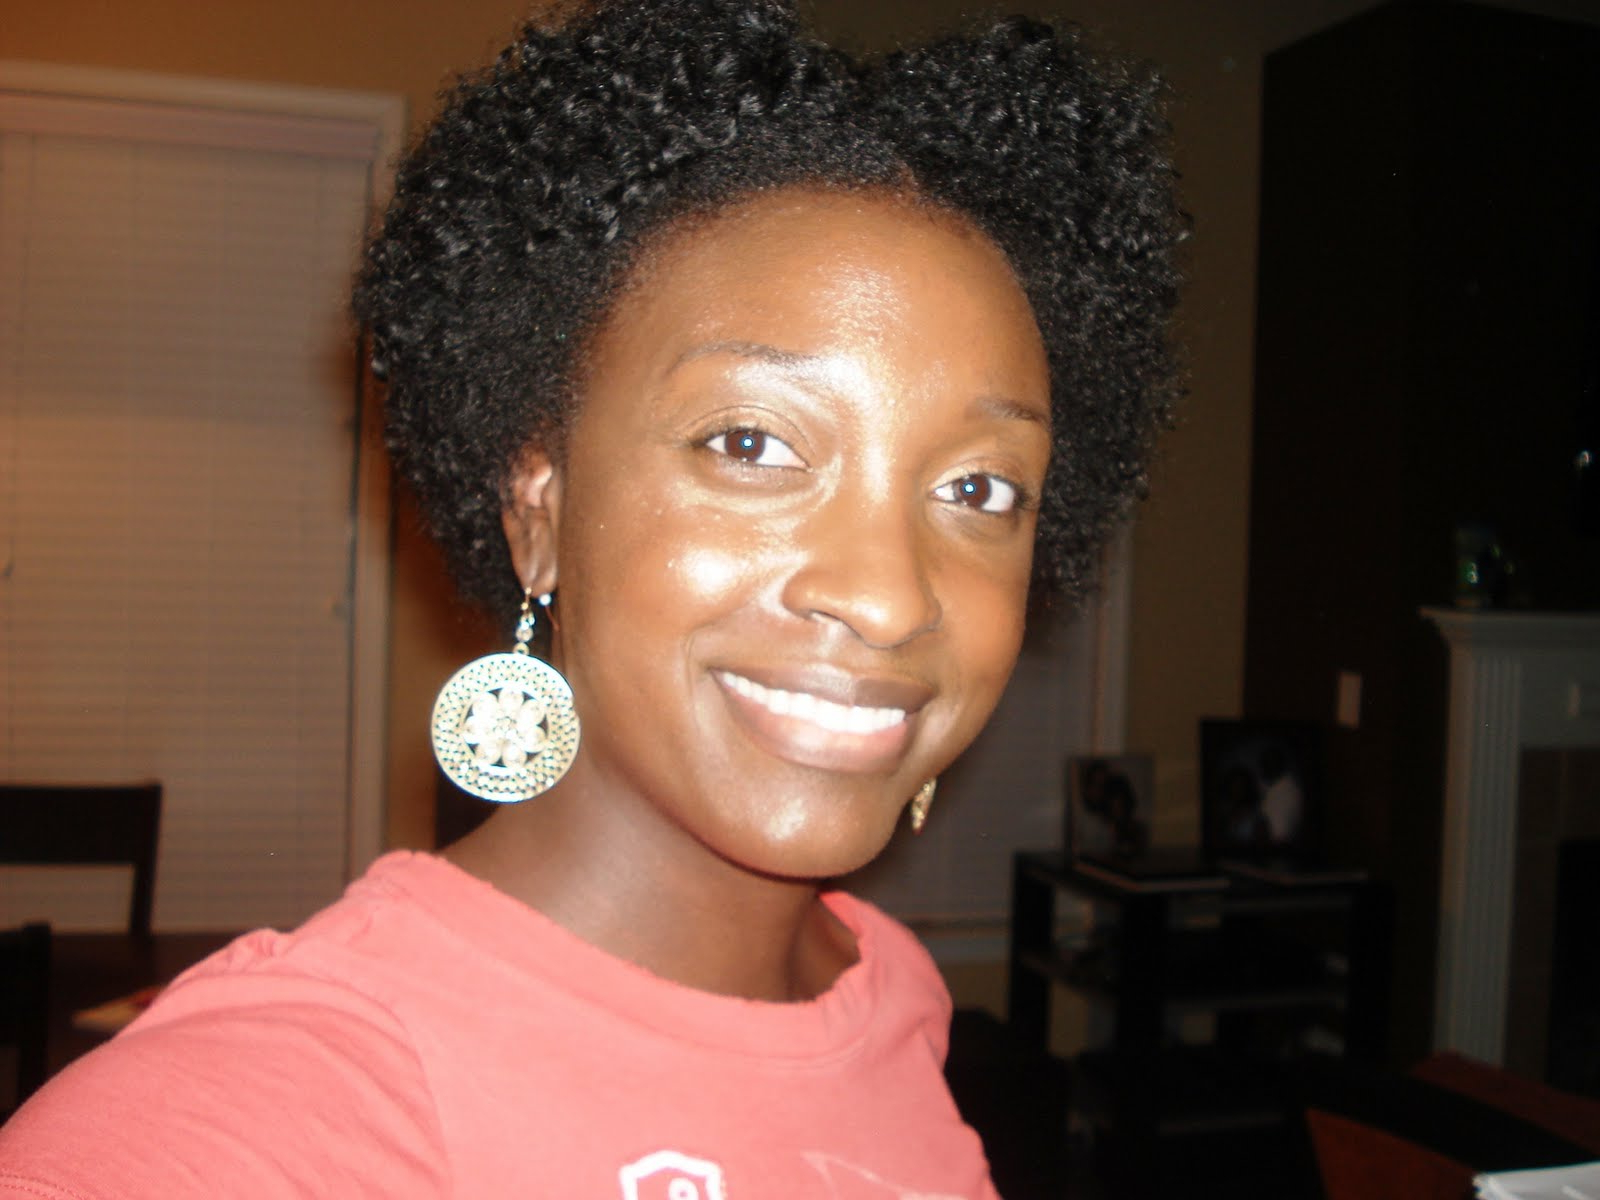 Black Short Natural Curly Hairstyles (View 4 of 20)